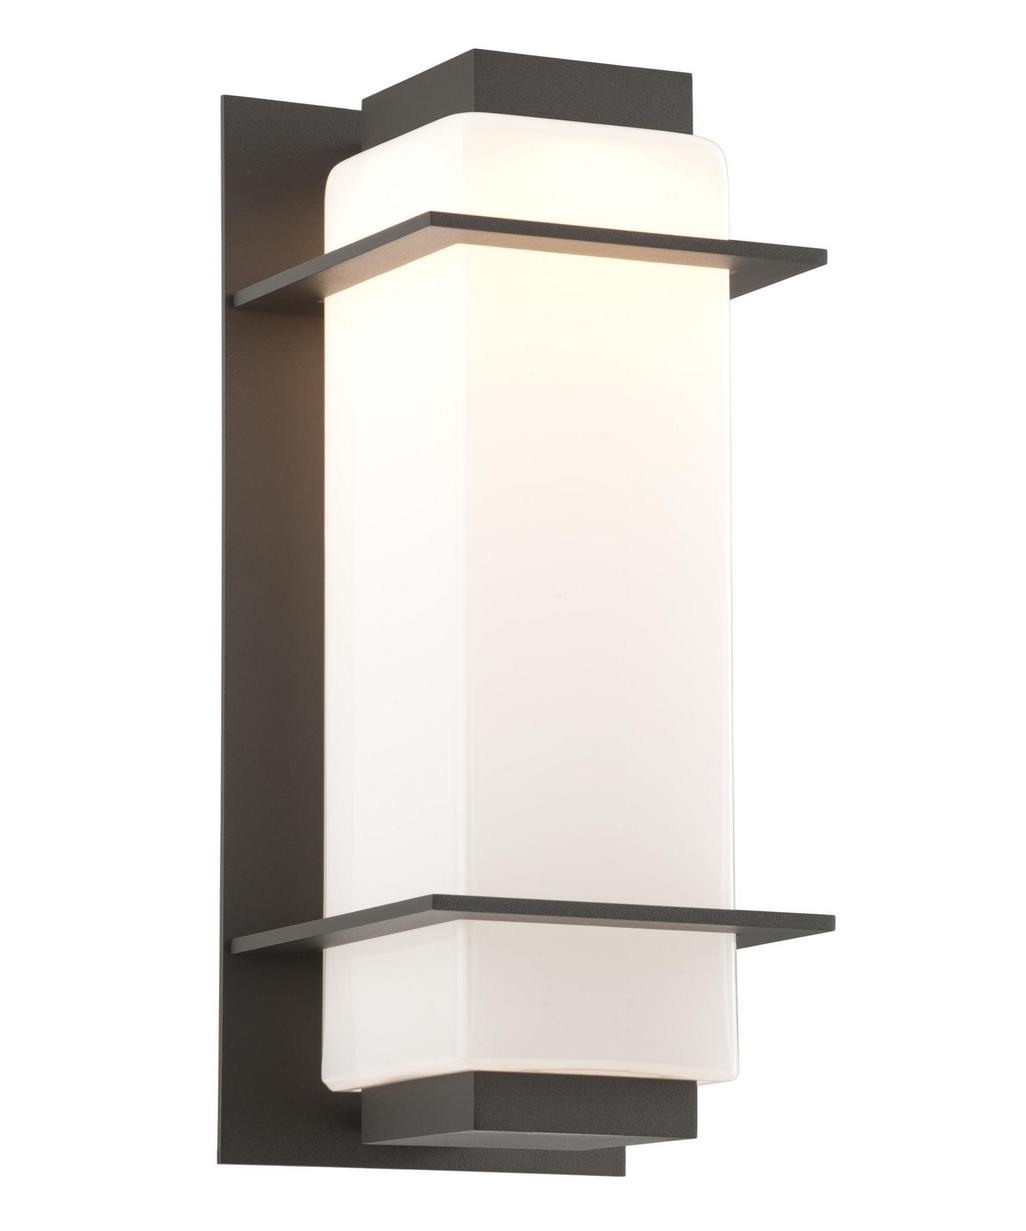 Wow Expensive Outdoor Wall Lighting 36 For Your With Expensive Pertaining To Expensive Outdoor Wall Lighting (View 2 of 15)